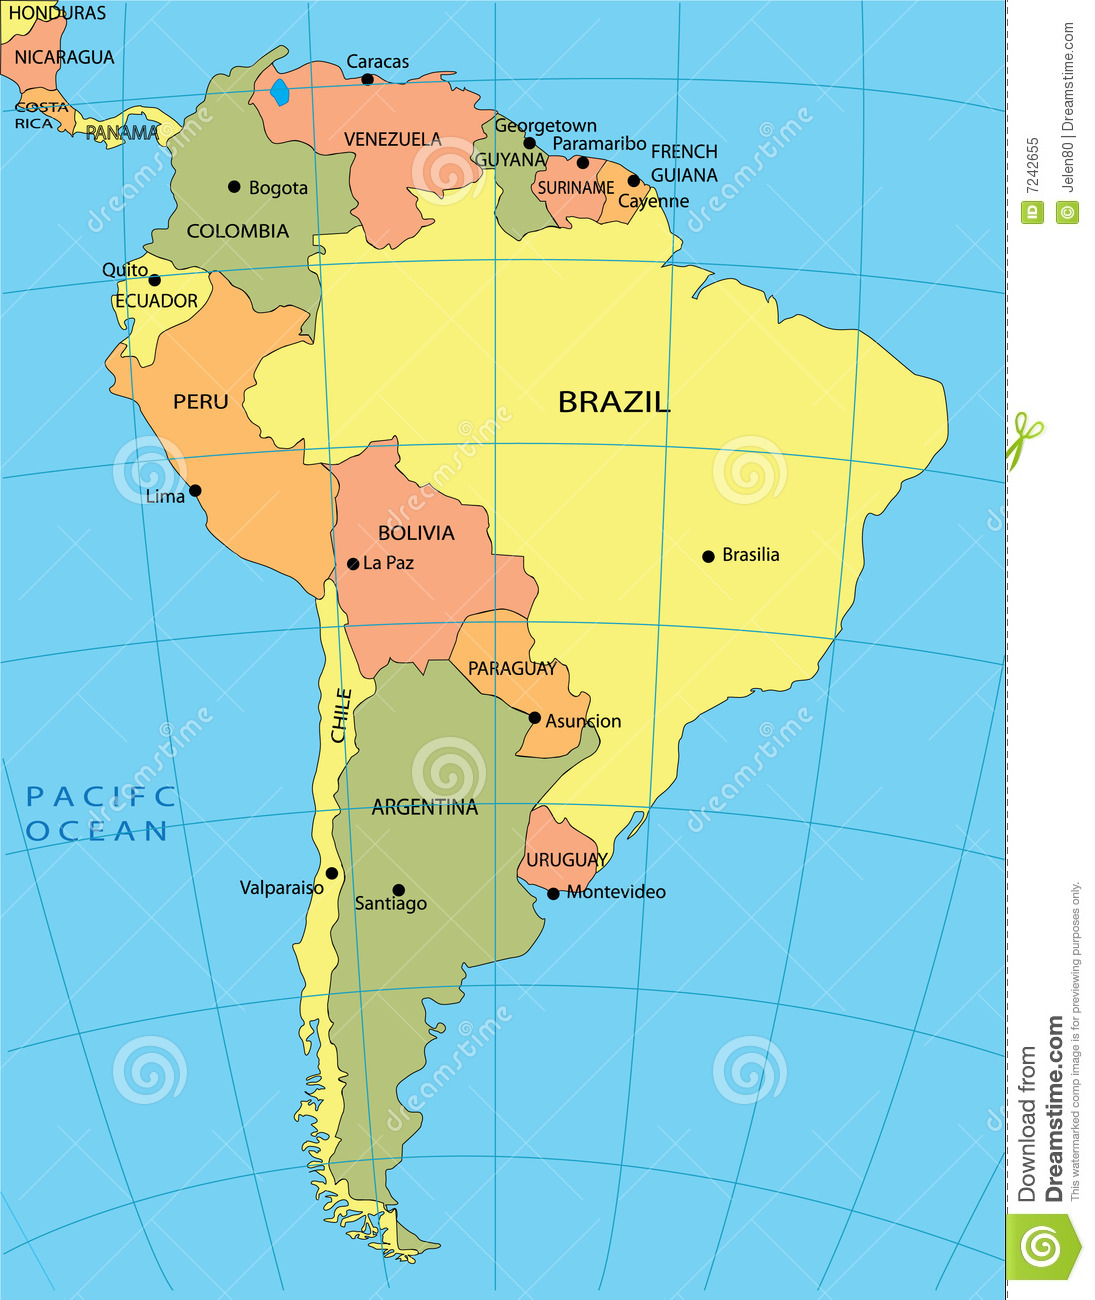 Best Images About Maps Latin America On Pinterest Guyana Map - America google maps